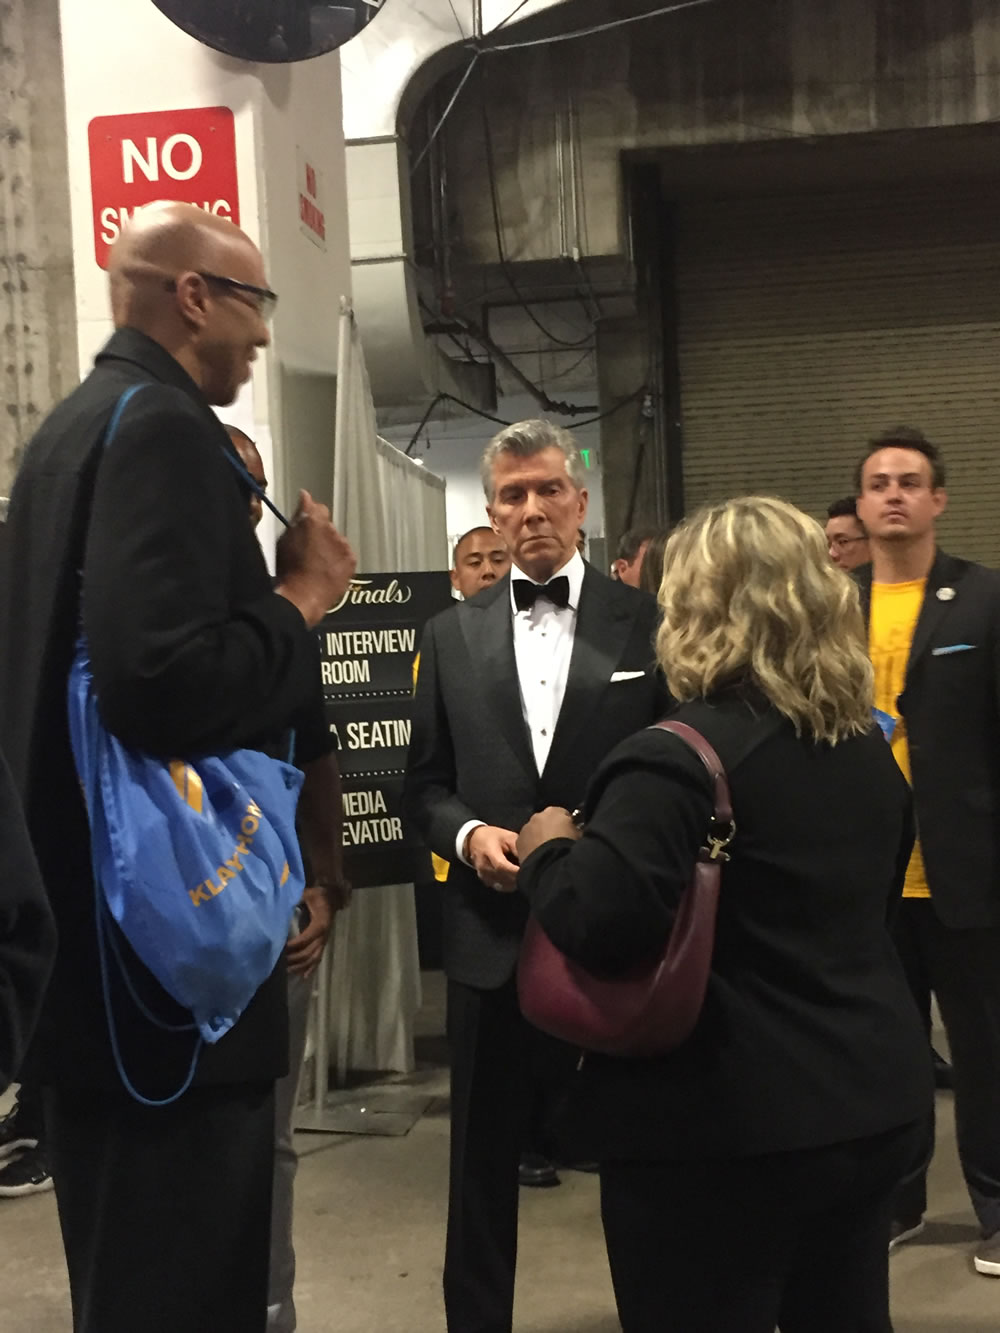 "<div class=""meta image-caption""><div class=""origin-logo origin-image none""><span>none</span></div><span class=""caption-text"">Klay Thompson's dad Mychal and legendary ringside announcer Michael Buffer are seen off court at the NBA Finals before game 1 on Thursday, June 4, 2017 in Oakland, Calif. (KGO-TV)</span></div>"